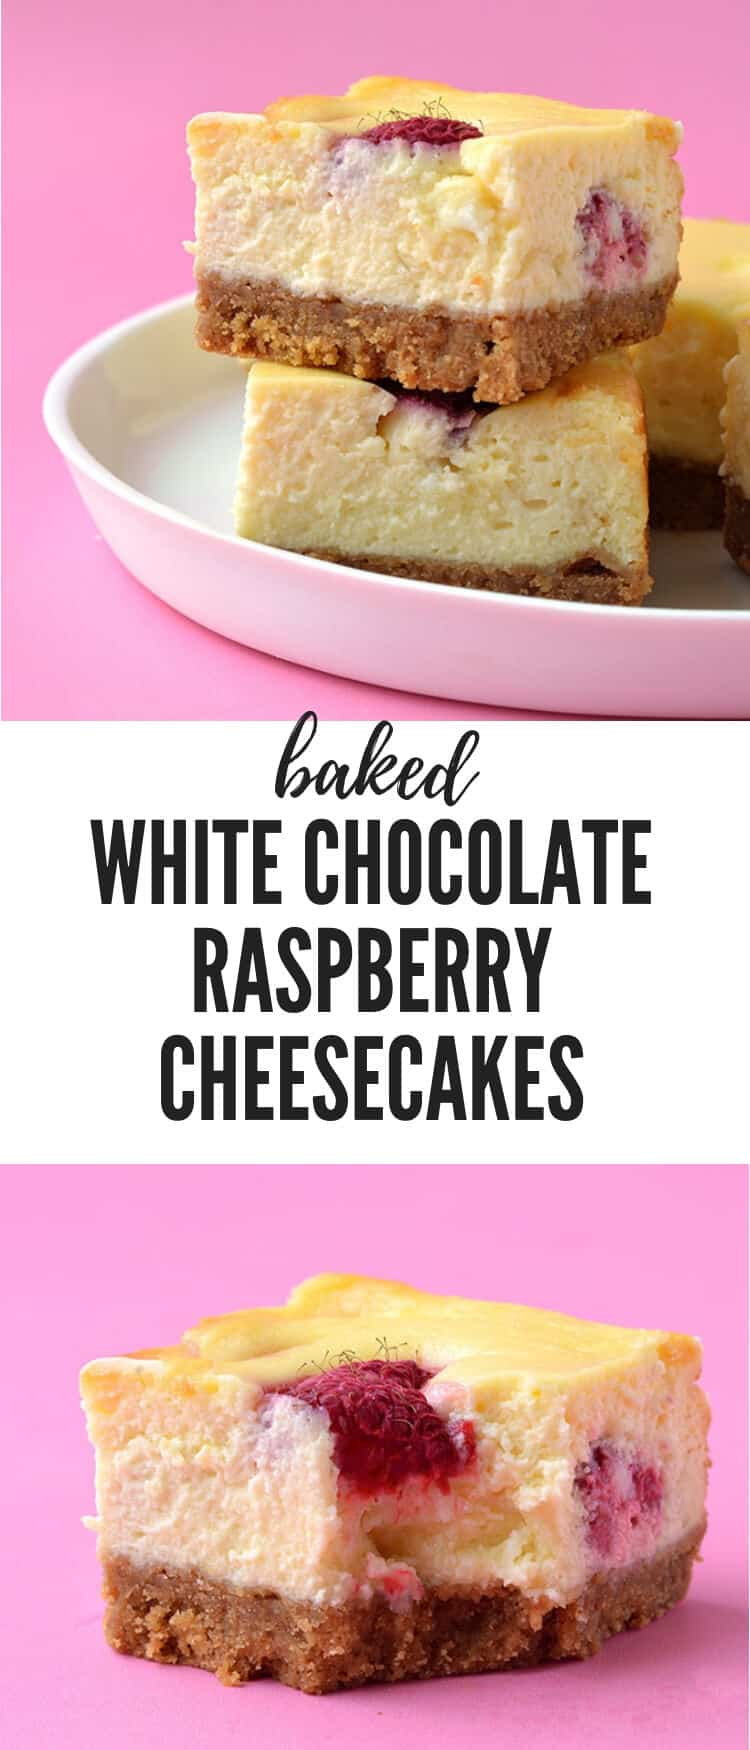 Baked White Chocolate Raspberry Cheesecake Bars made with fresh raspberries. Creamy and smooth, these easy cheesecake are so easy to make - no water bath needed. Recipe from sweetestmenu.com #cheesecake #raspberries #raspberry #whitechocolate